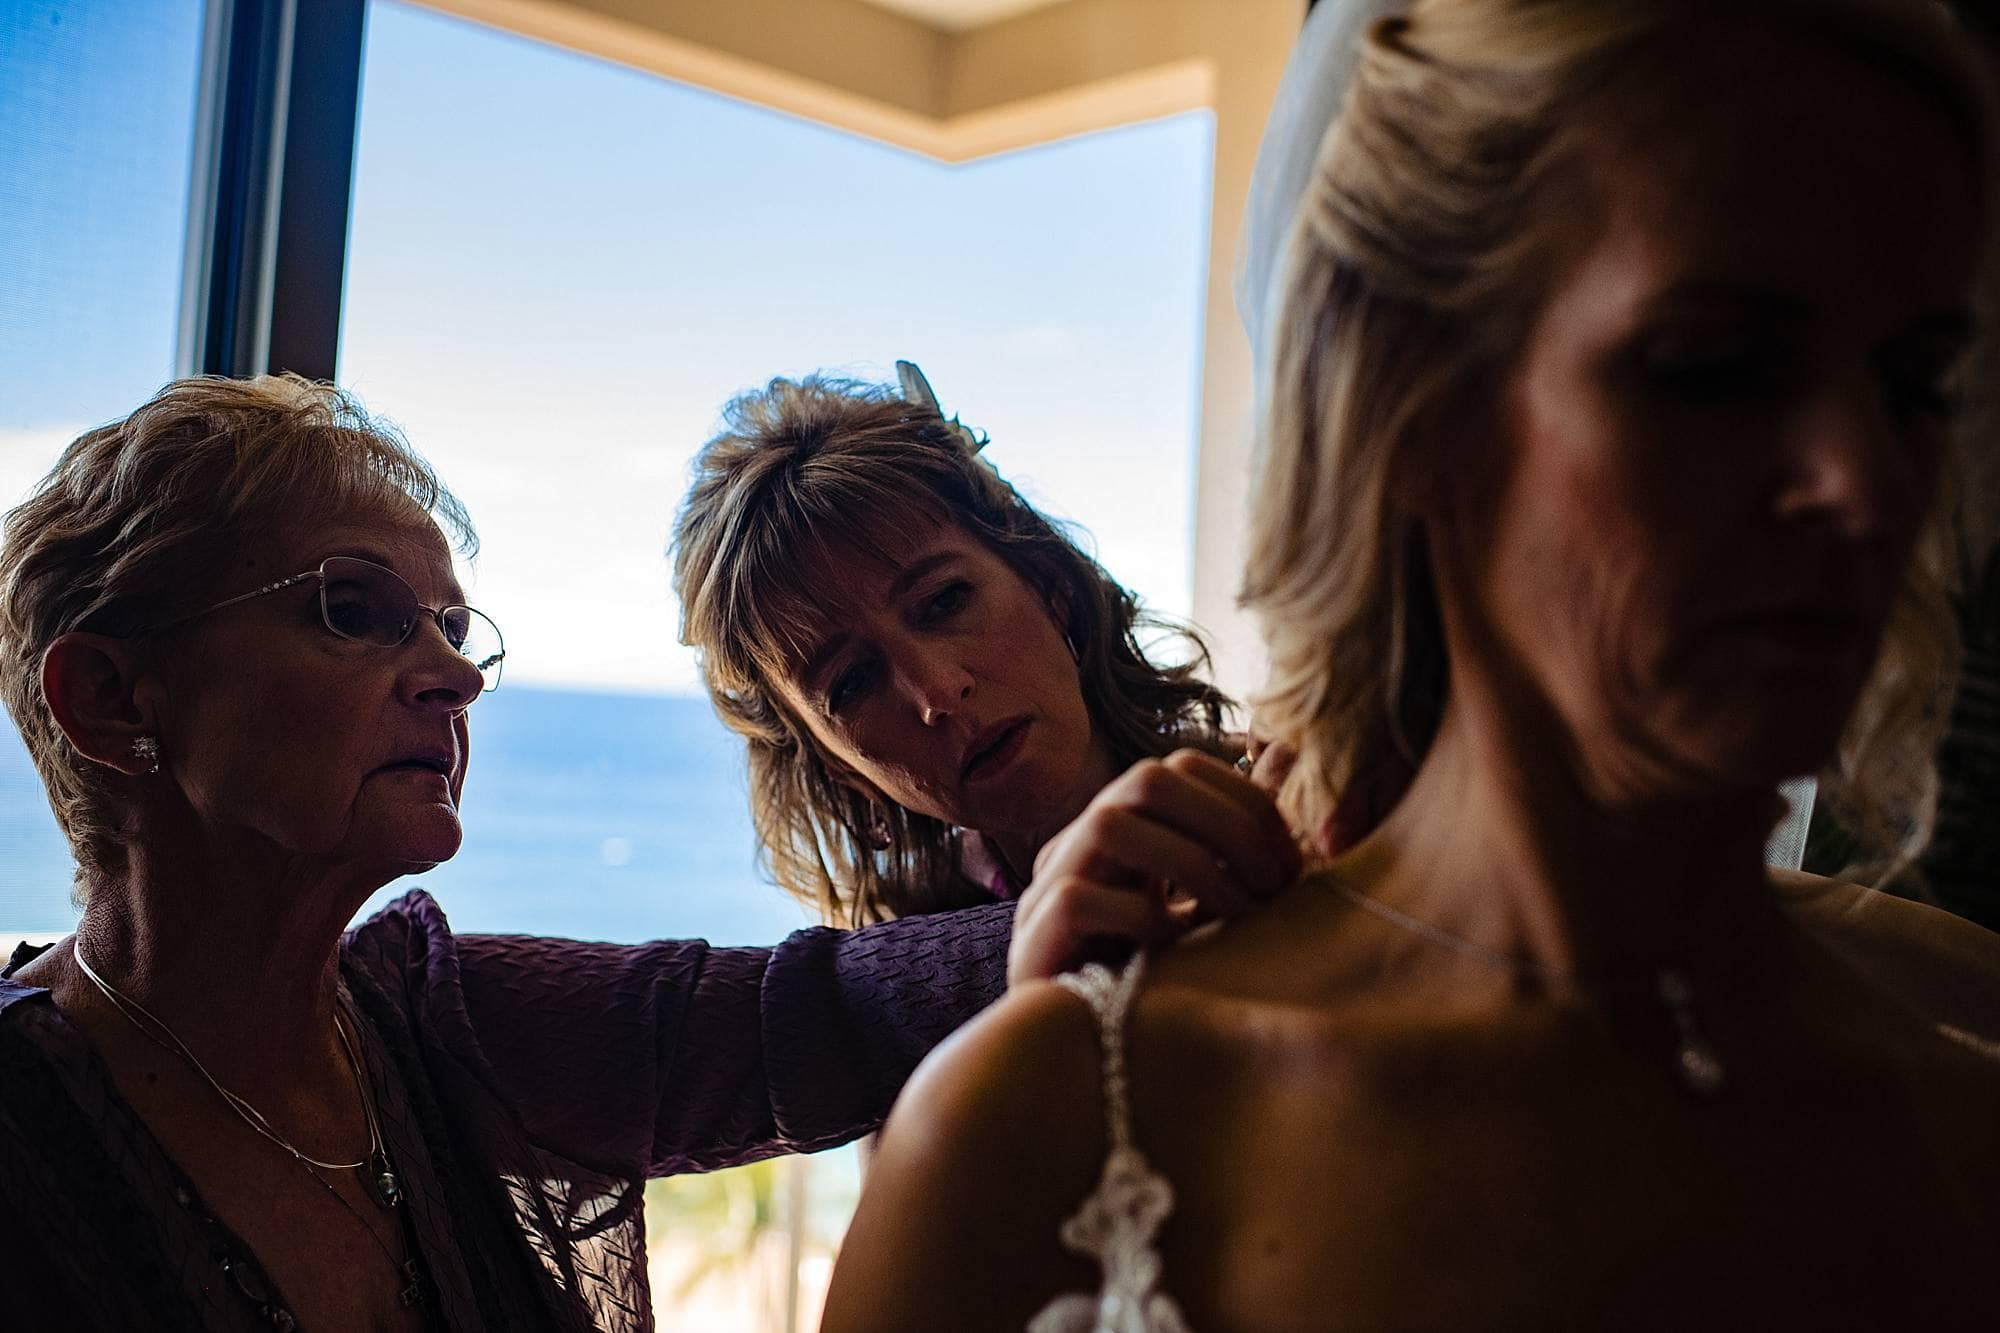 mother of the bride and maid of honor helping bride get ready